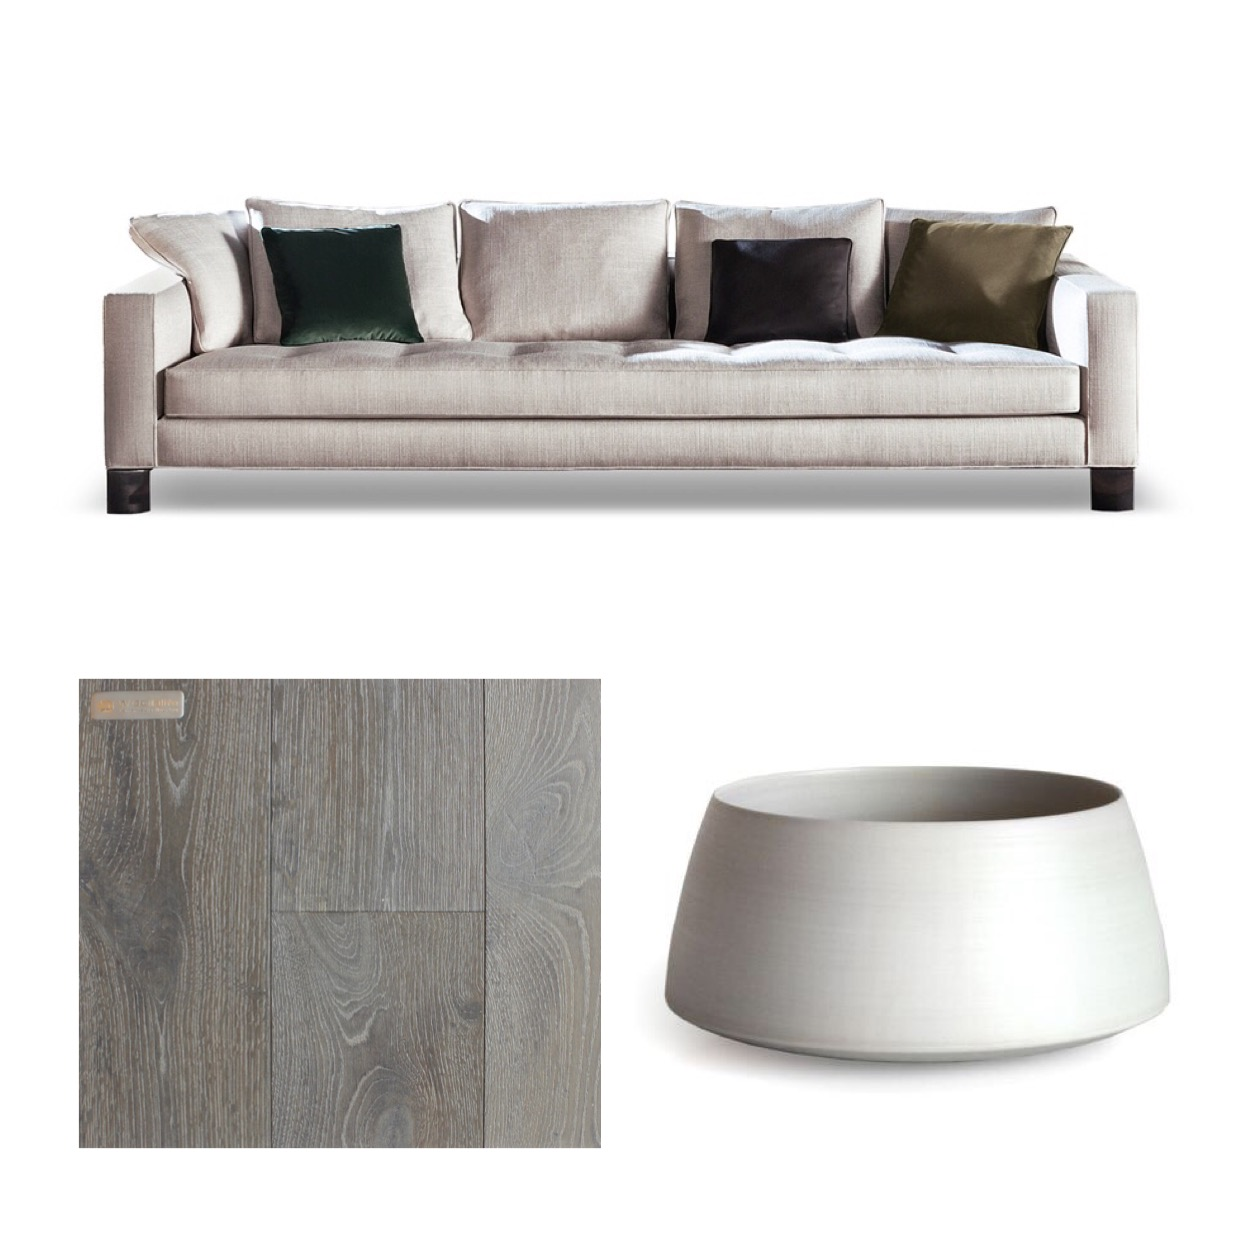 Pollock Sofa by Minotti |  Living Space Vancouver   Rina Menardi Mono Vase |  Provide Home   European White Oak Eternal Grey |  Woodlife